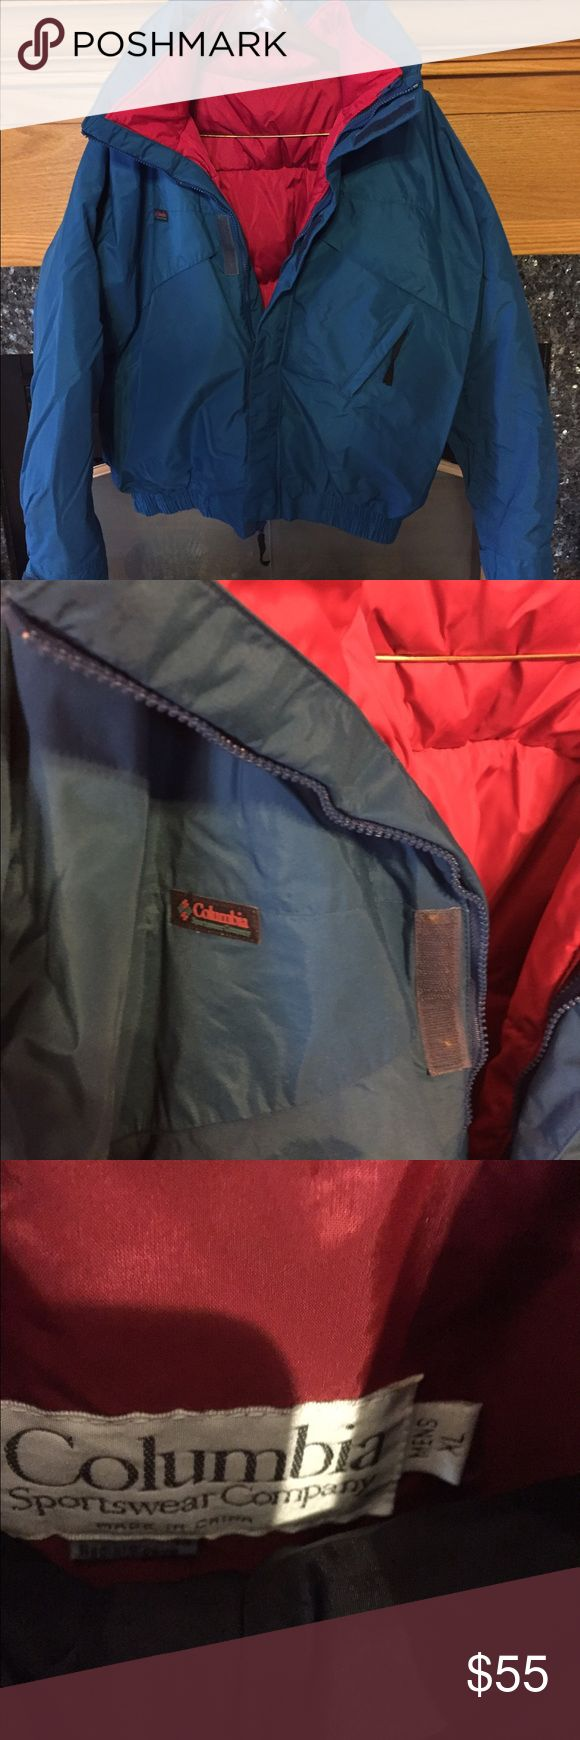 Vintage Men's Columbia coat XL No flaws noted. Near perfect condition. Very warm with removable jacket inside. I do  accept reasonable offers. My items priced $15 and under are fairly fixed but I do offer great discounts for bundles. The more you buy the bigger the discount. Columbia Jackets & Coats Ski & Snowboard